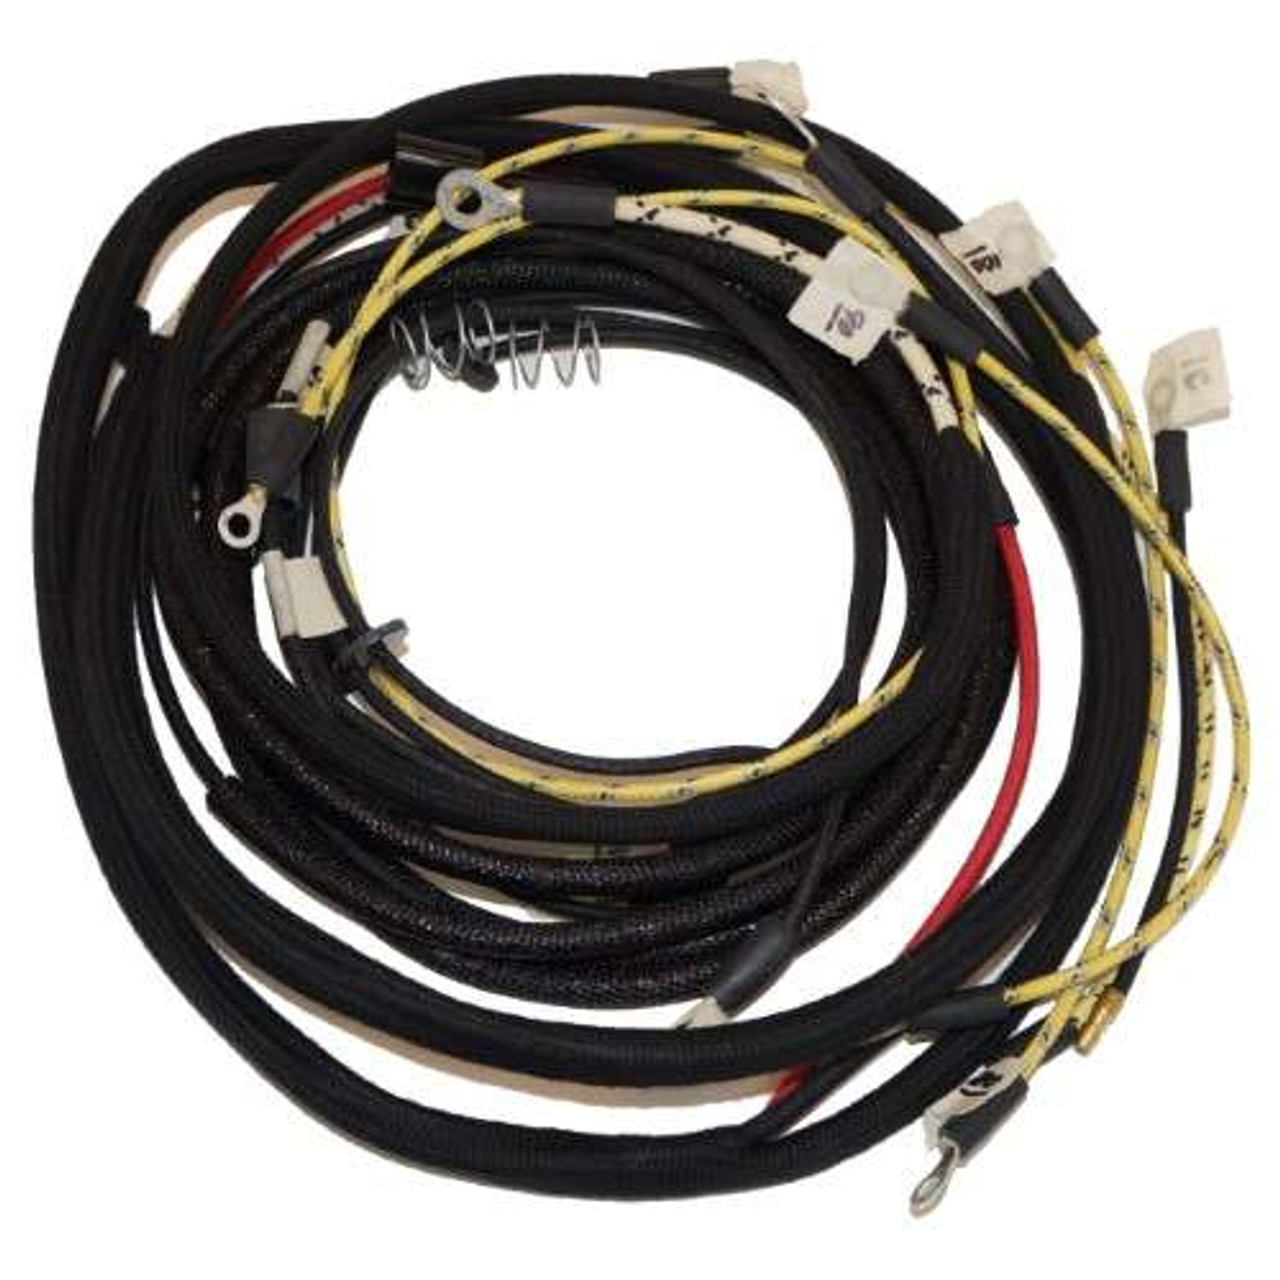 allis chalmers wd wiring harness wiring harness kit  tractors with 1 wire alternator  allis  wiring harness kit  tractors with 1